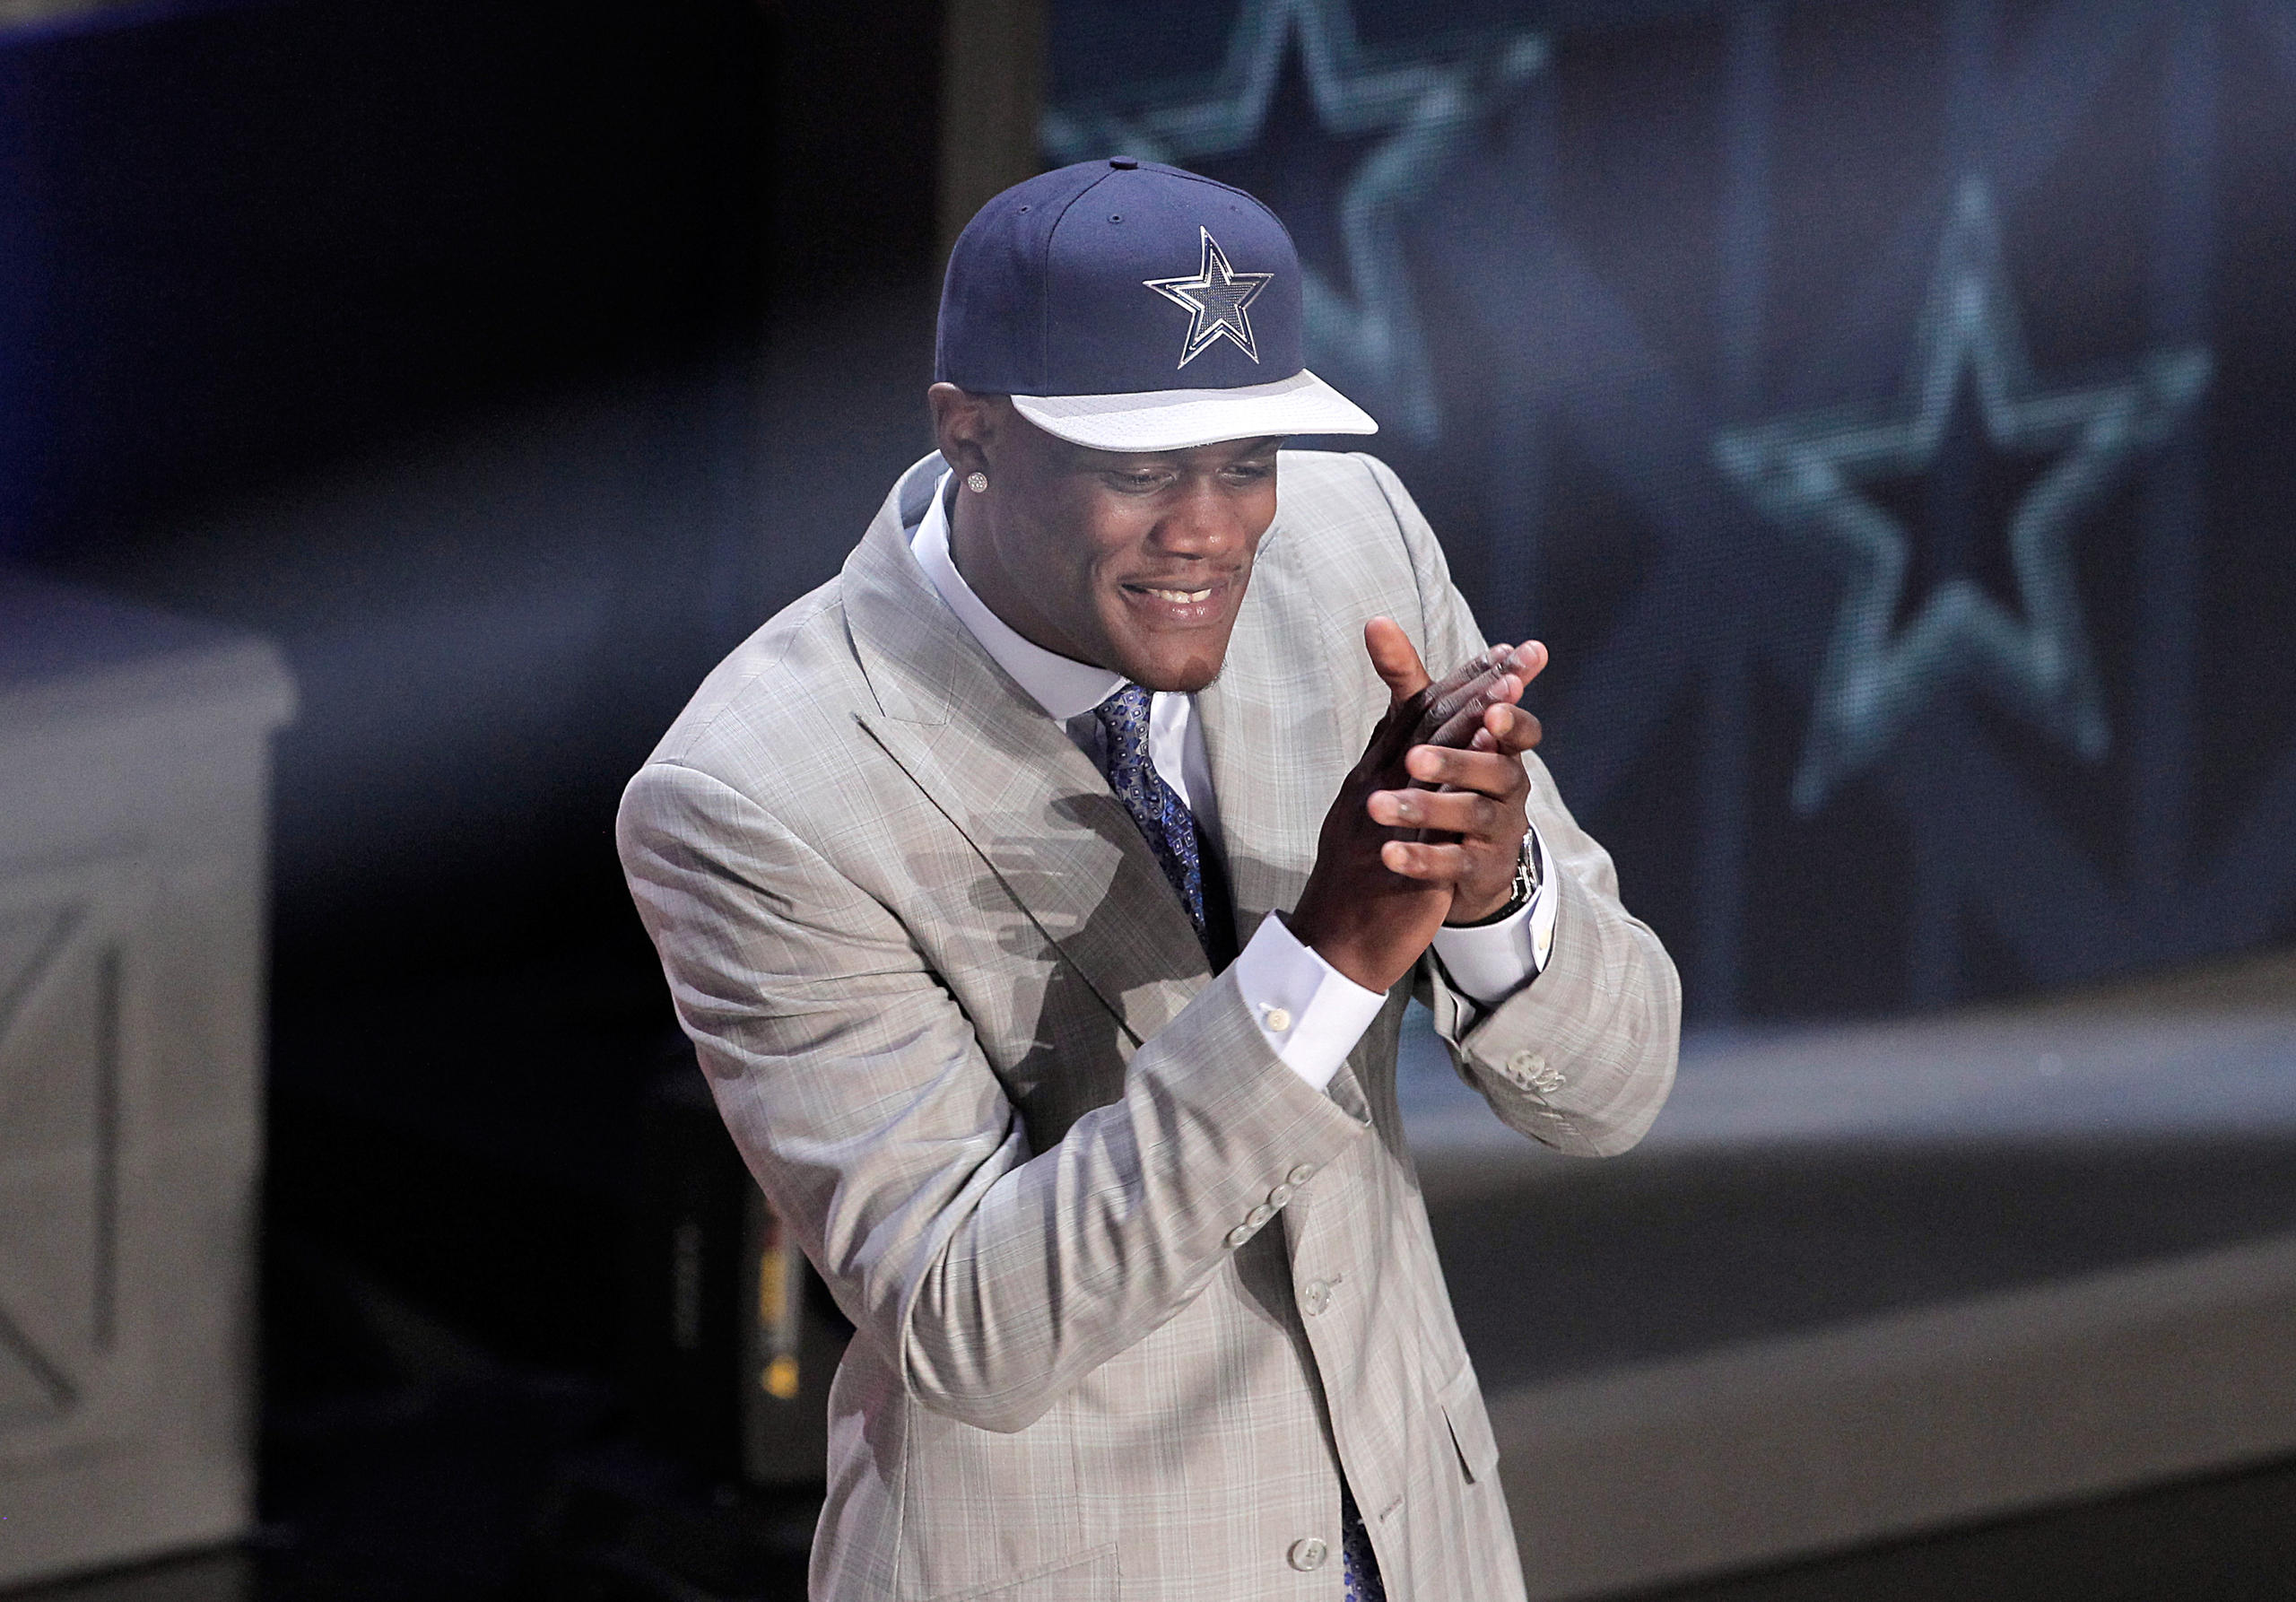 Cowboys Blog - Randy Gregory, I am Disappointed. Plain and Simple 4